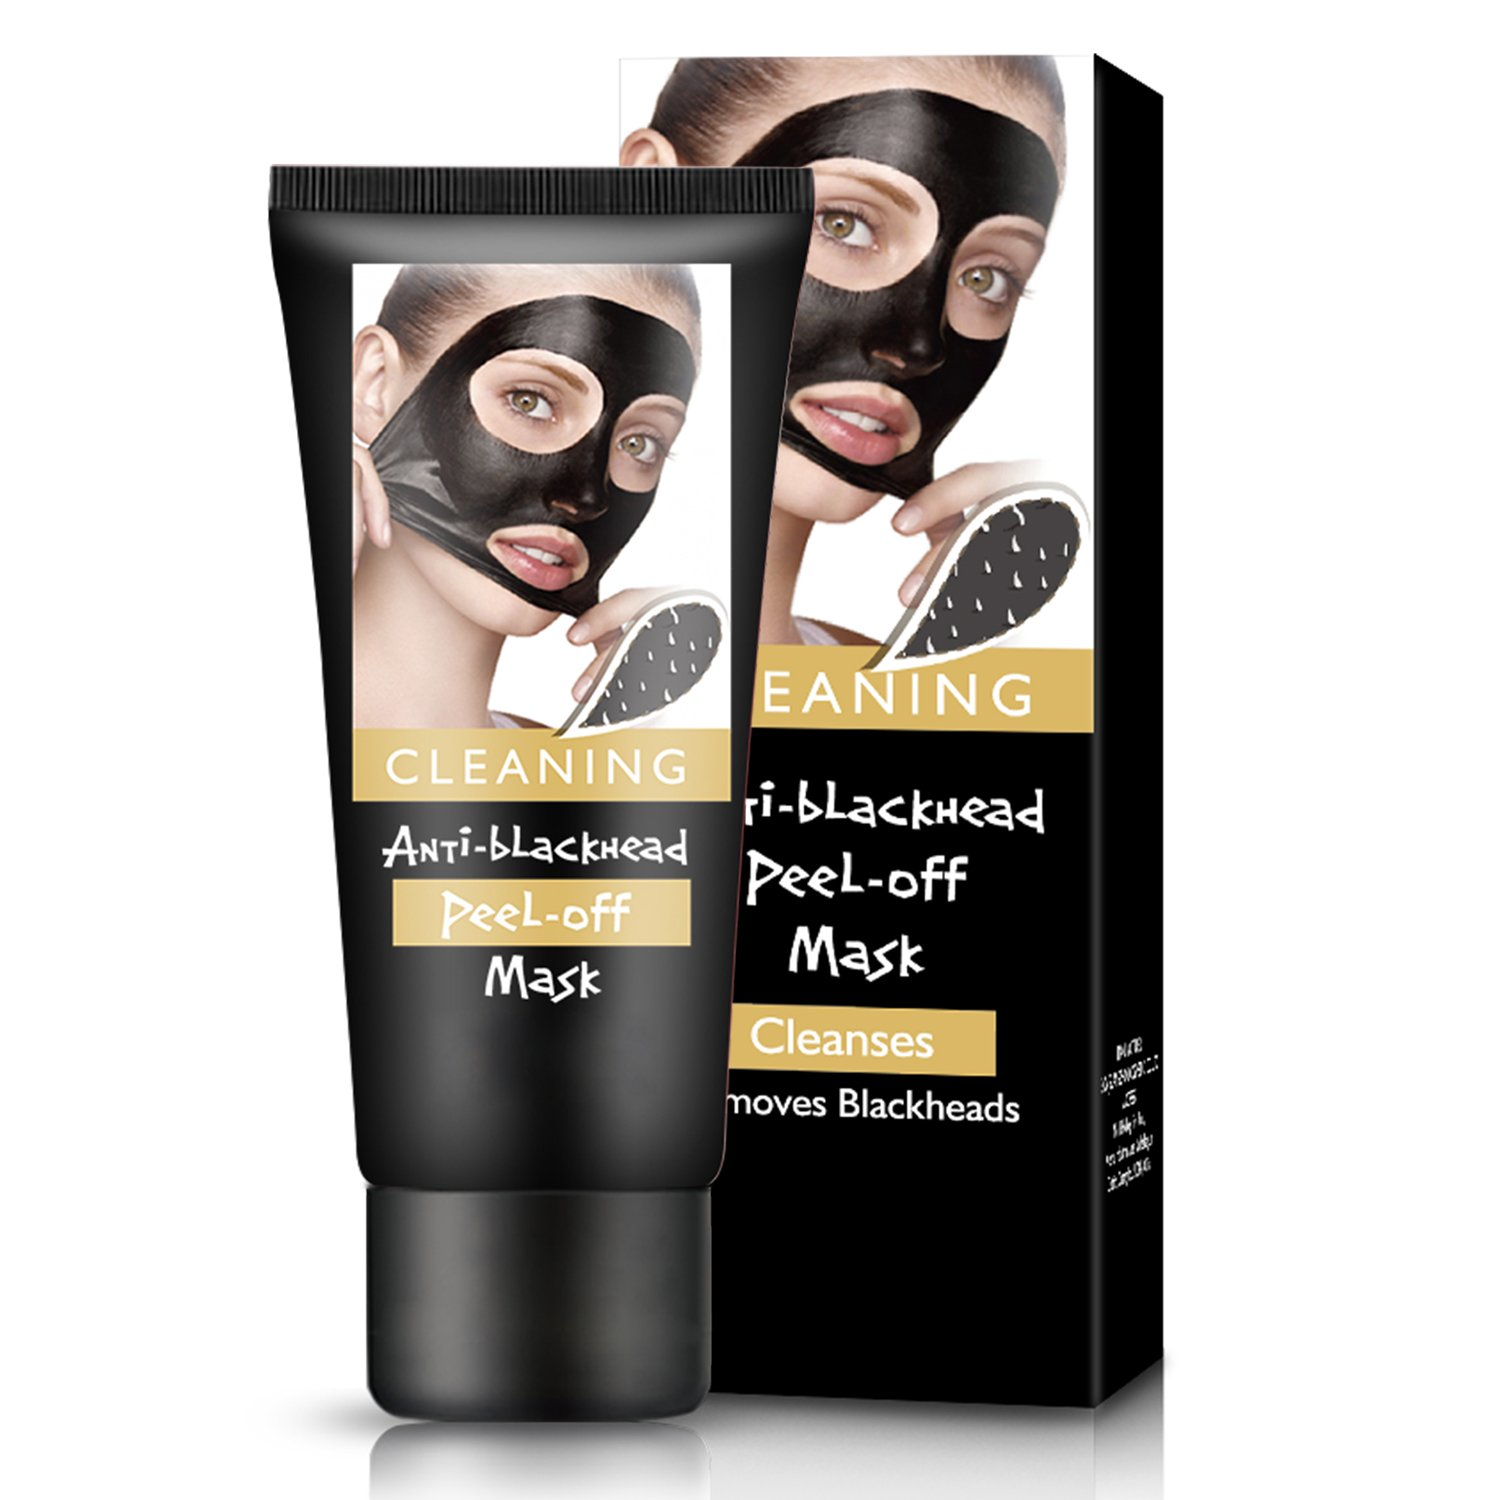 Blackhead Remover Mask Volcanic Mud Deep Clean Skin Mask Onelass Activated Peel off Blackhead Mask Purifying Acne Mud Nose and Face Mask Halloween Mask(Hardback)